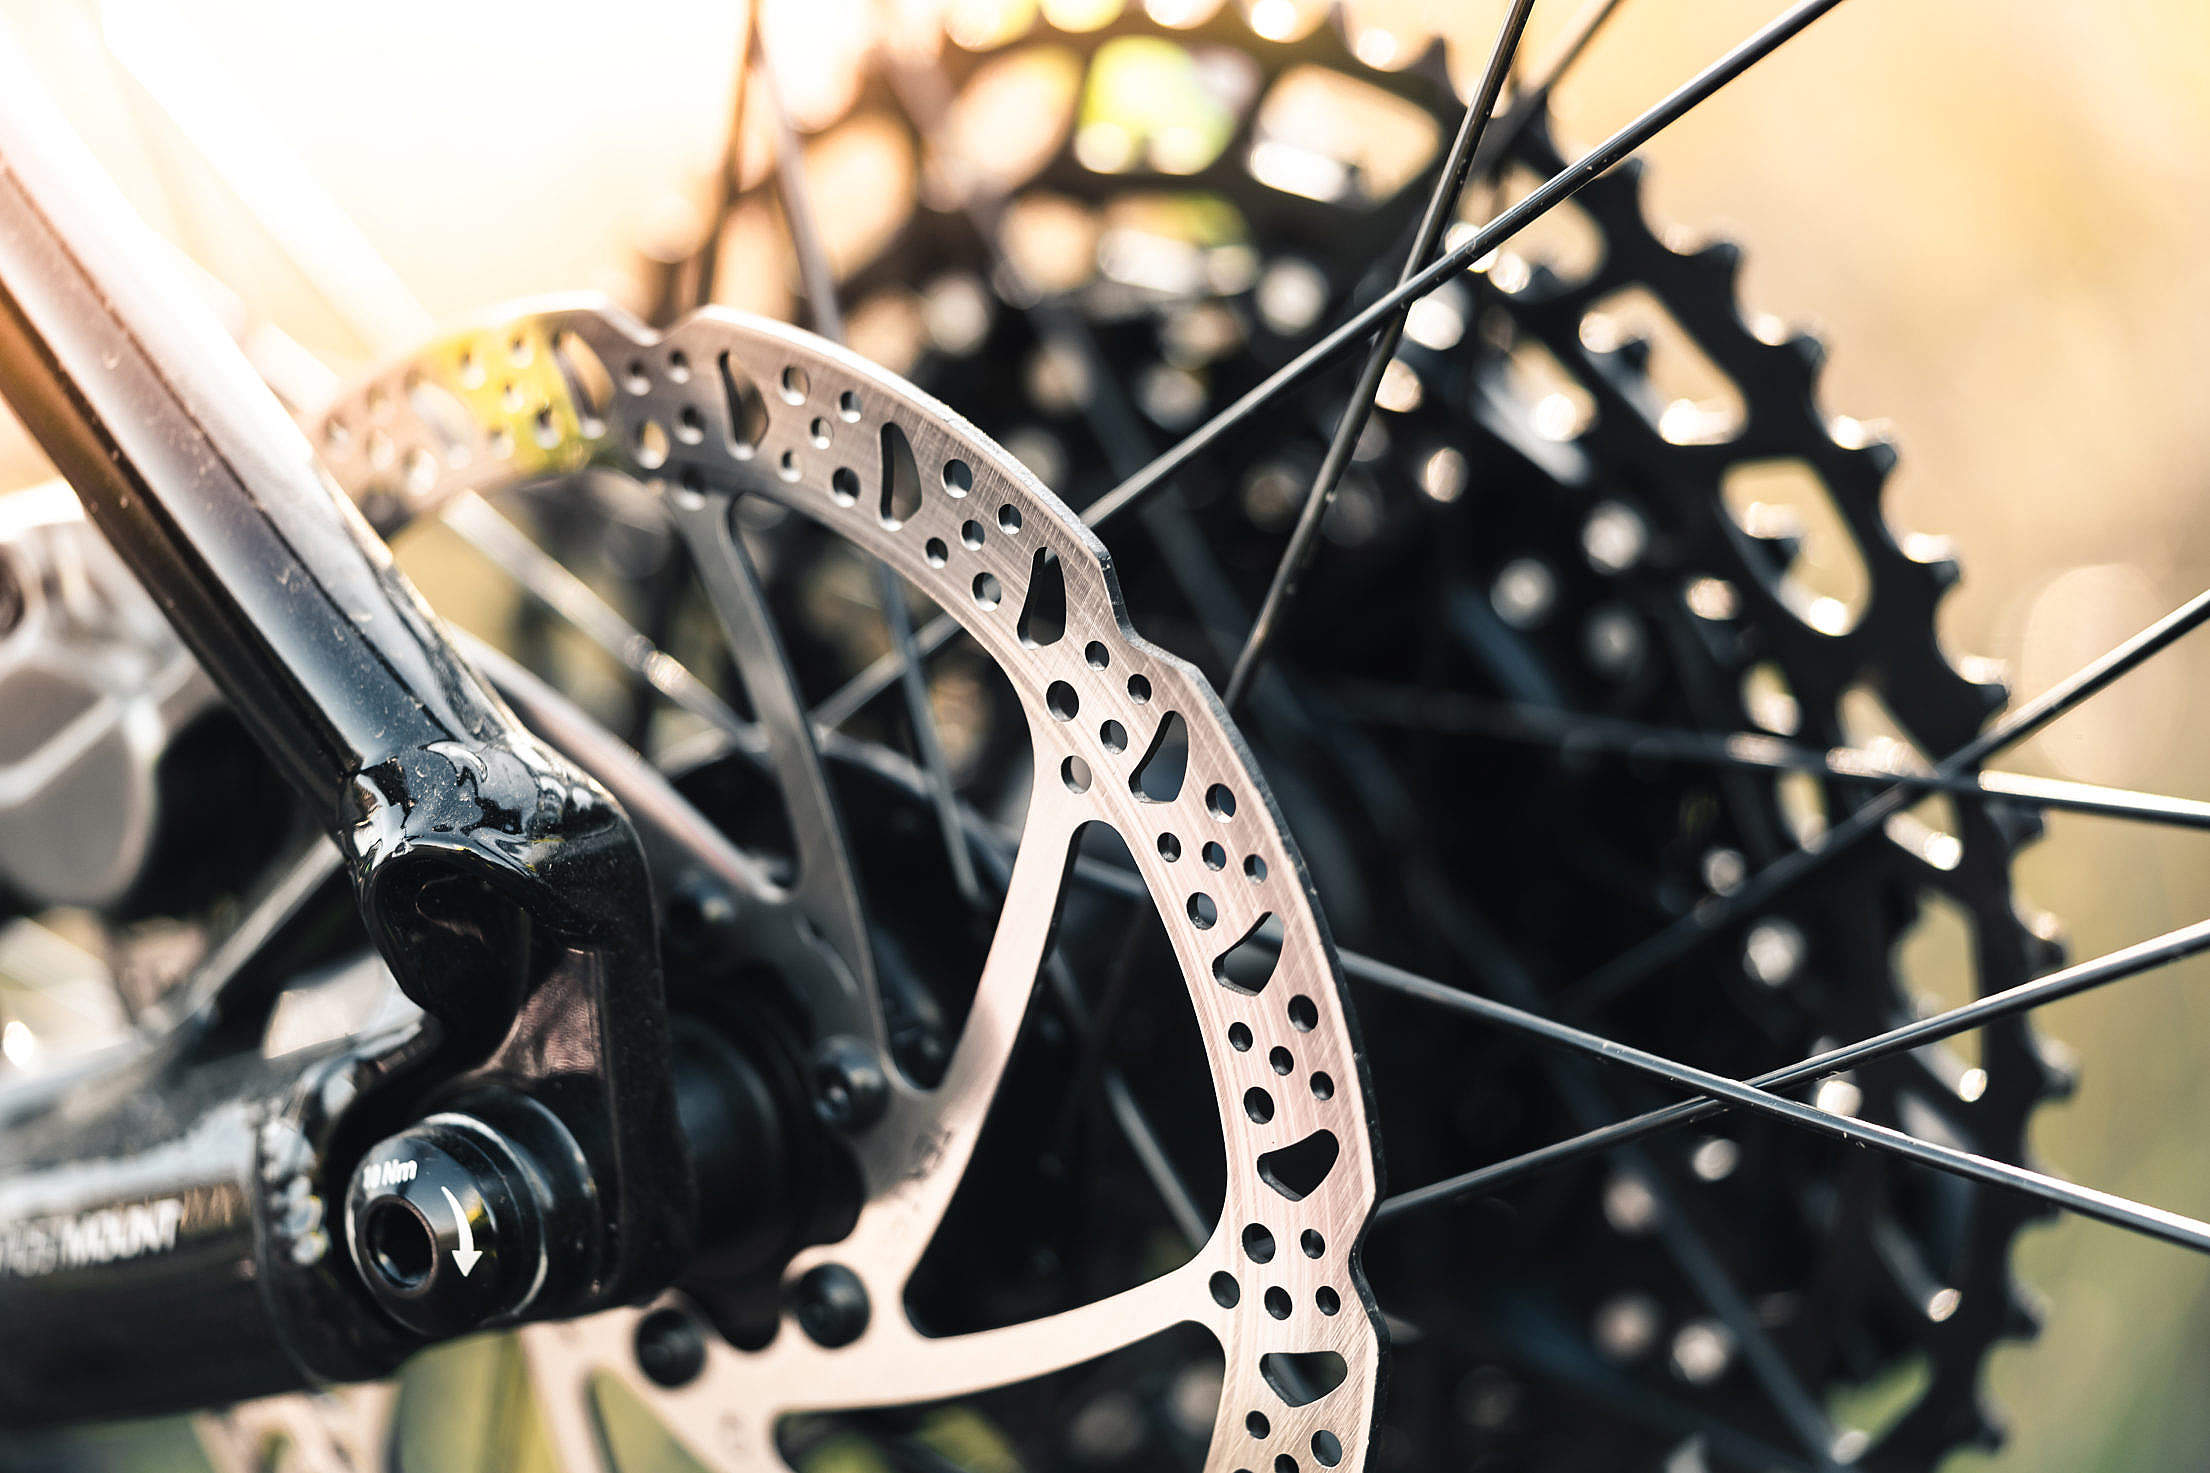 Mountain Bike Wheel with Disc Brake Close Up Free Stock Photo